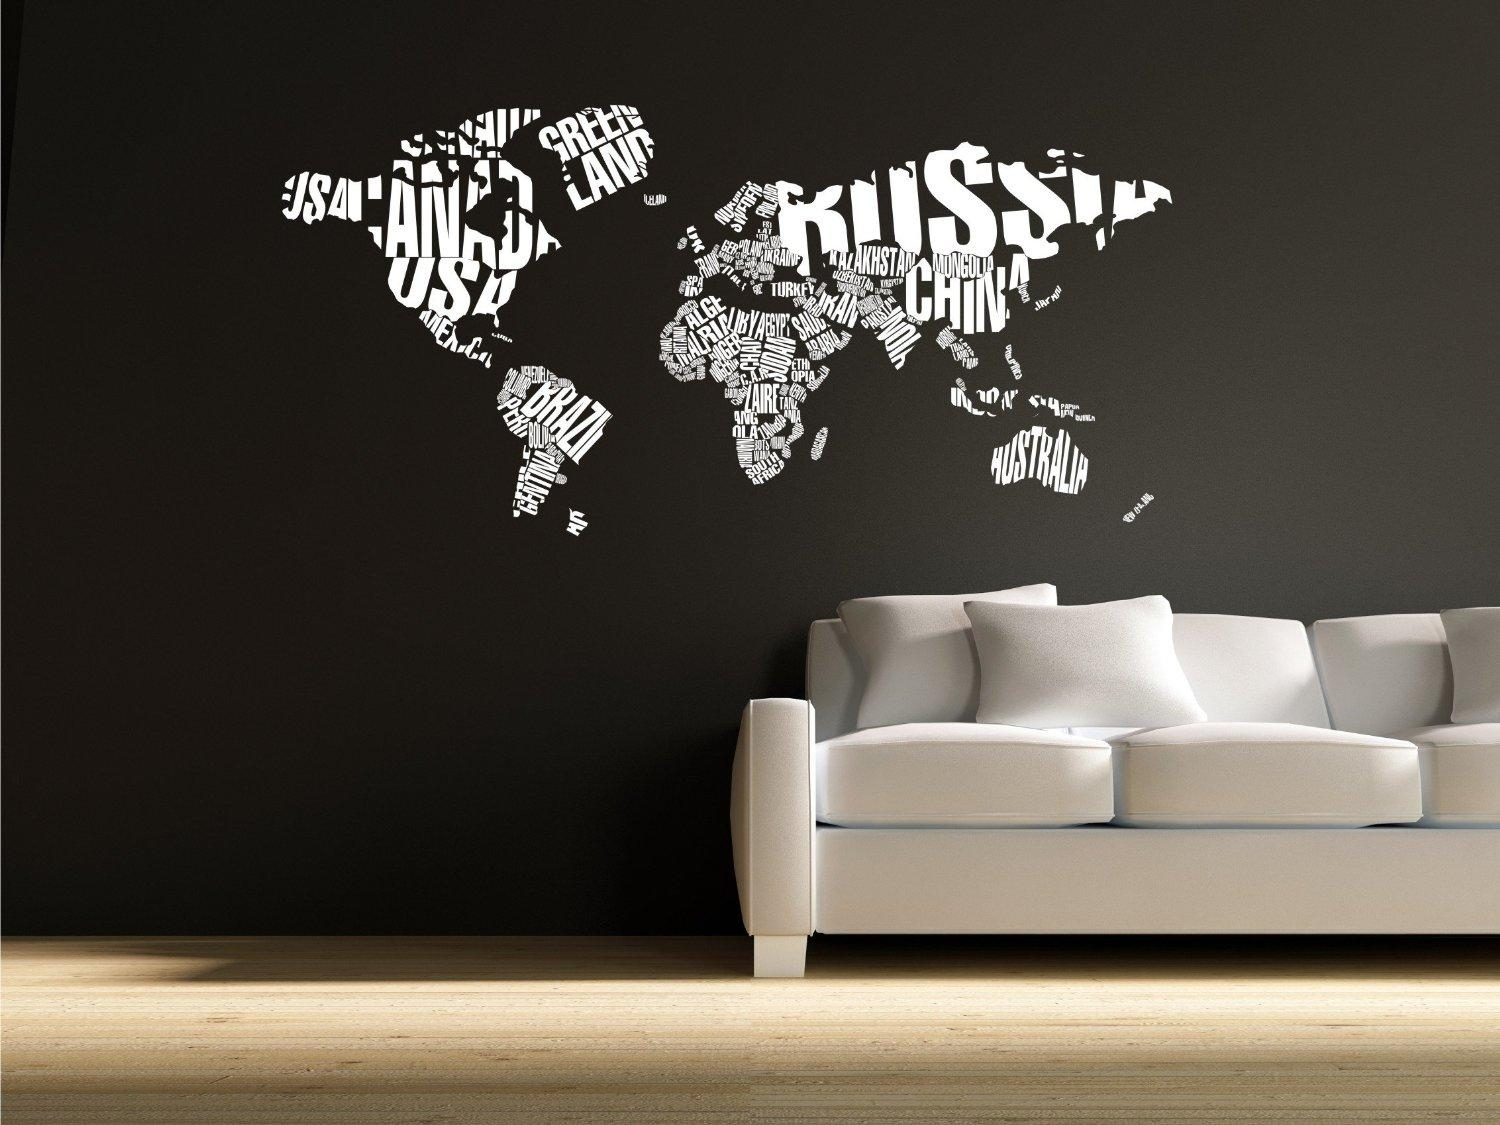 Wall Decal Design (Image 8 of 17)